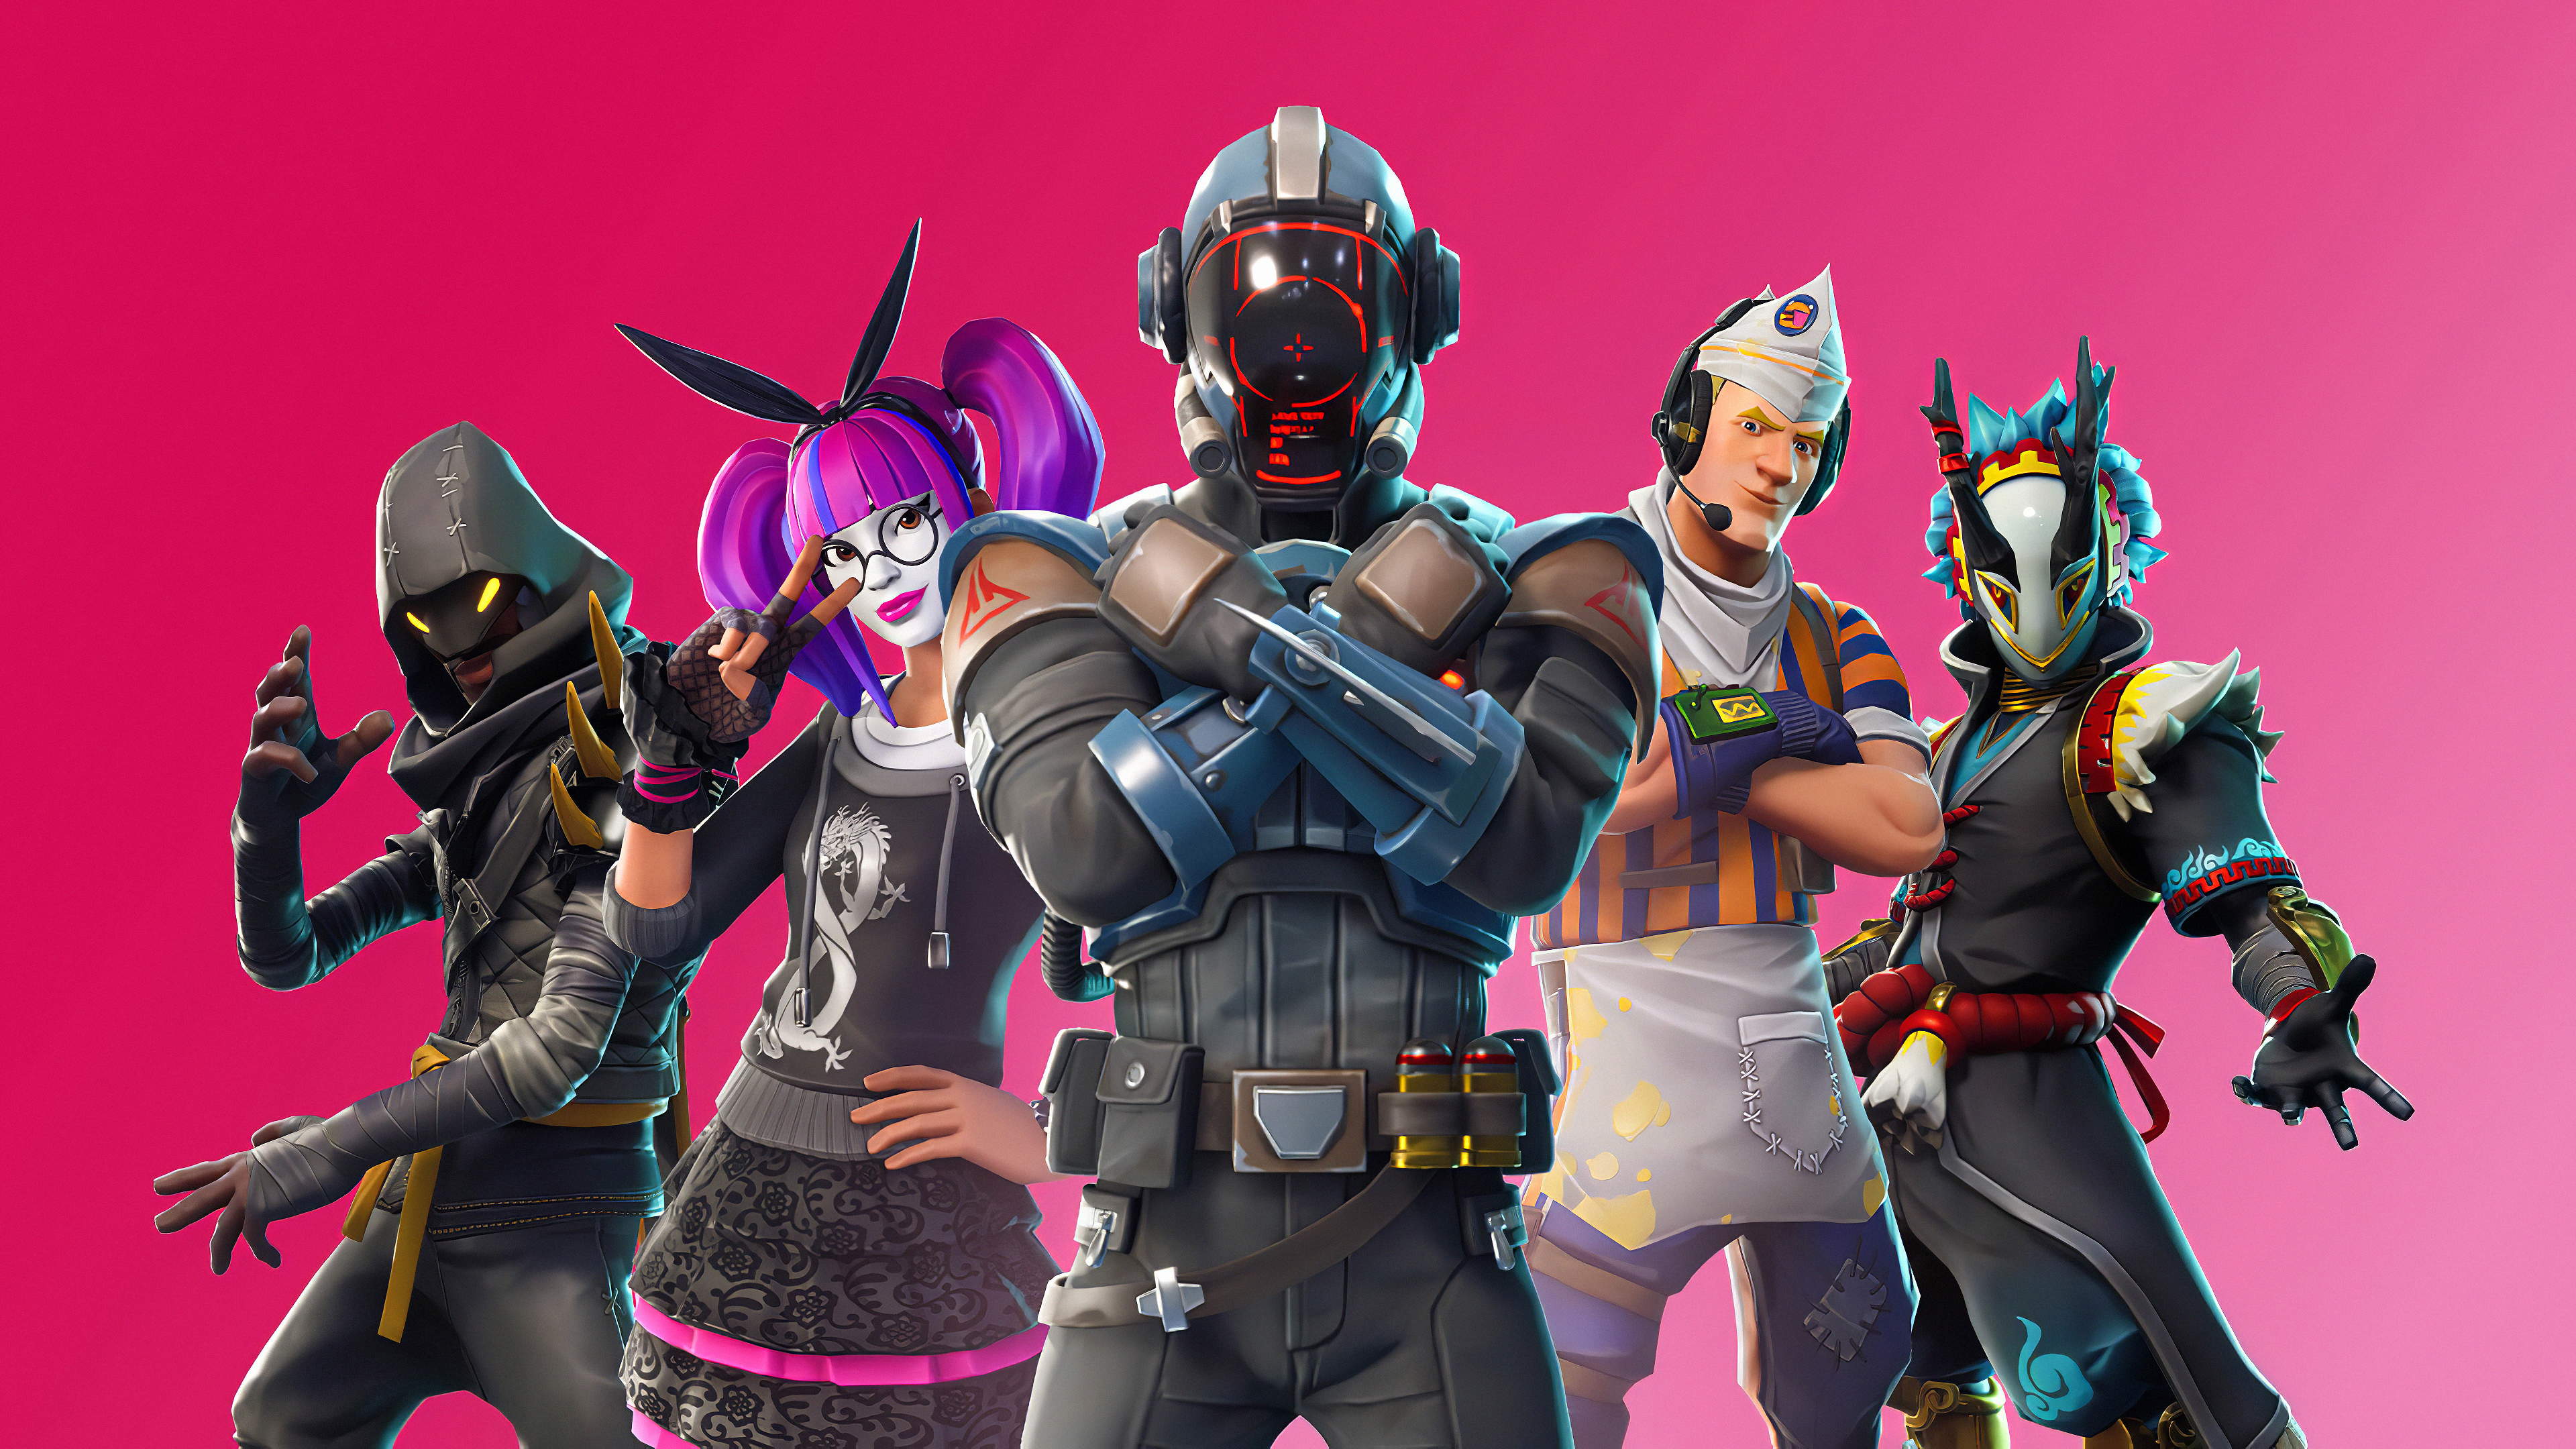 Fortnite Skins 4k Hd Games 4k Wallpapers Images Backgrounds Photos And Pictures